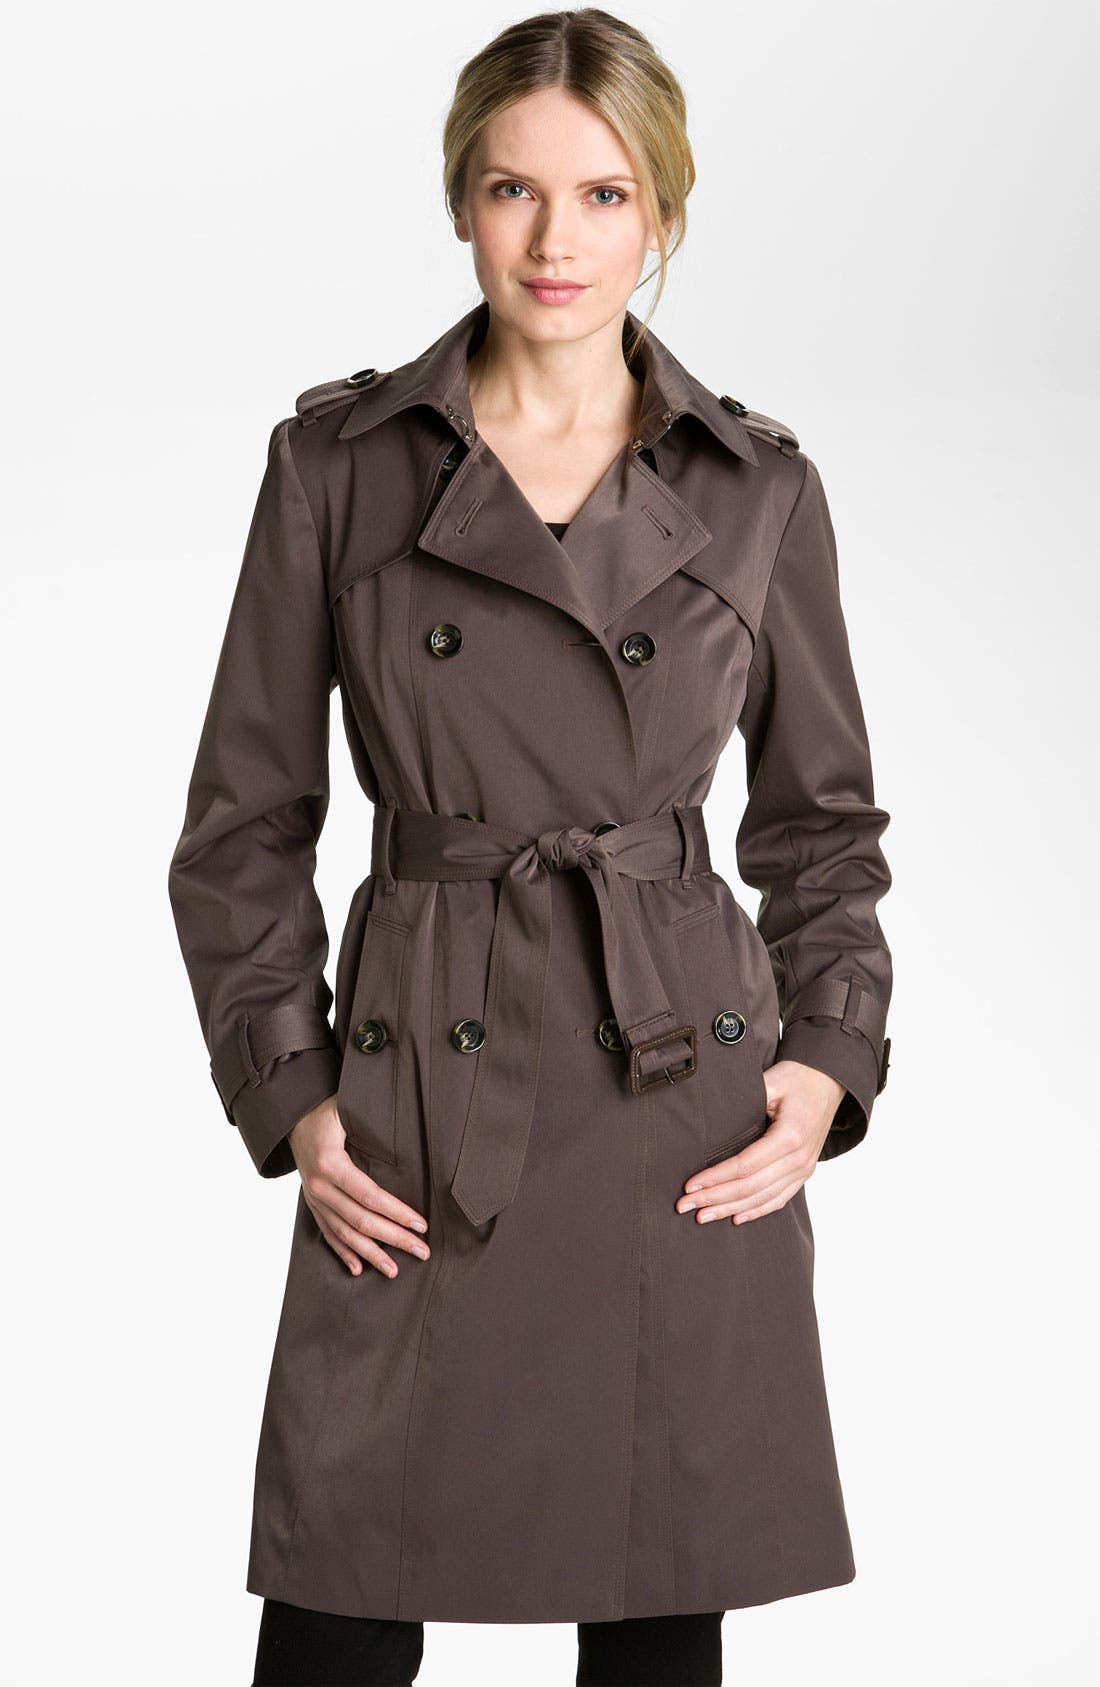 Alternate Image 1 Selected - London Fog Double Breasted Rain Trench Coat (Petite) (Online Exclusive)